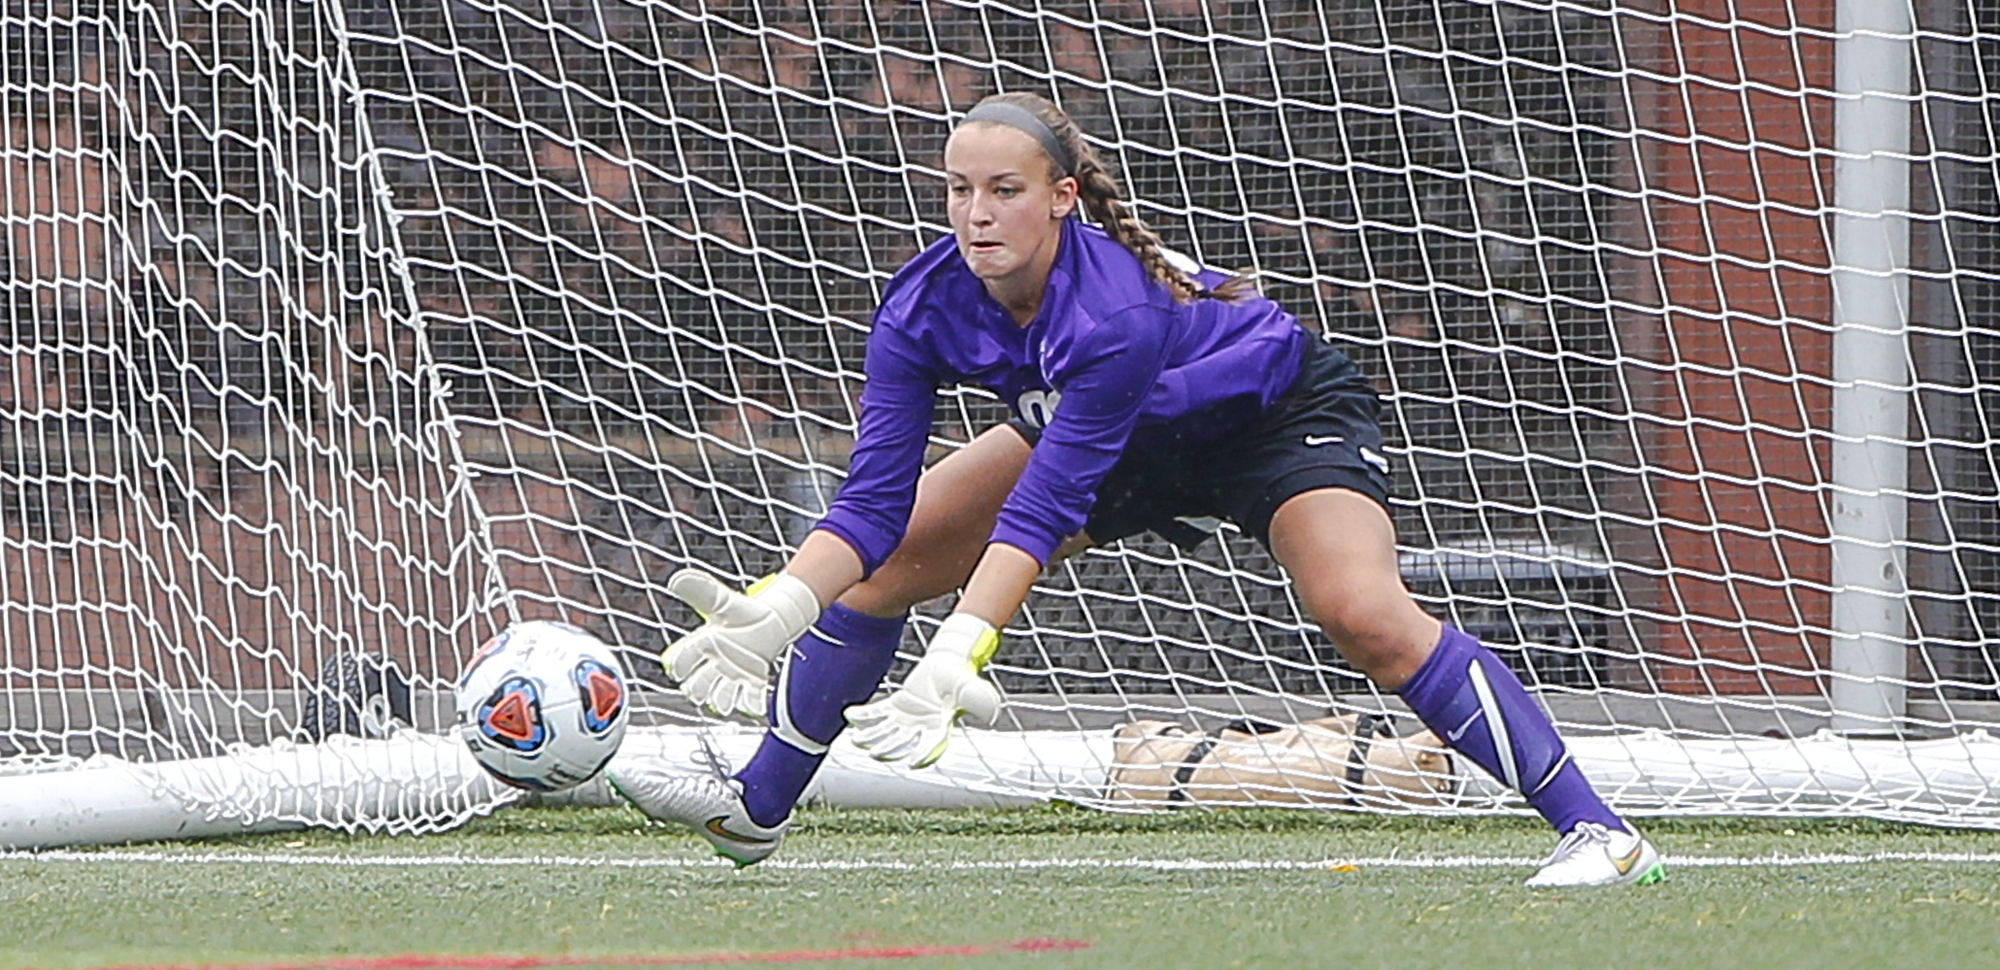 Senior goalkeeper Krissy Welsh made six saves in Tuesday night's 1-0 overtime loss at Swarthmore.